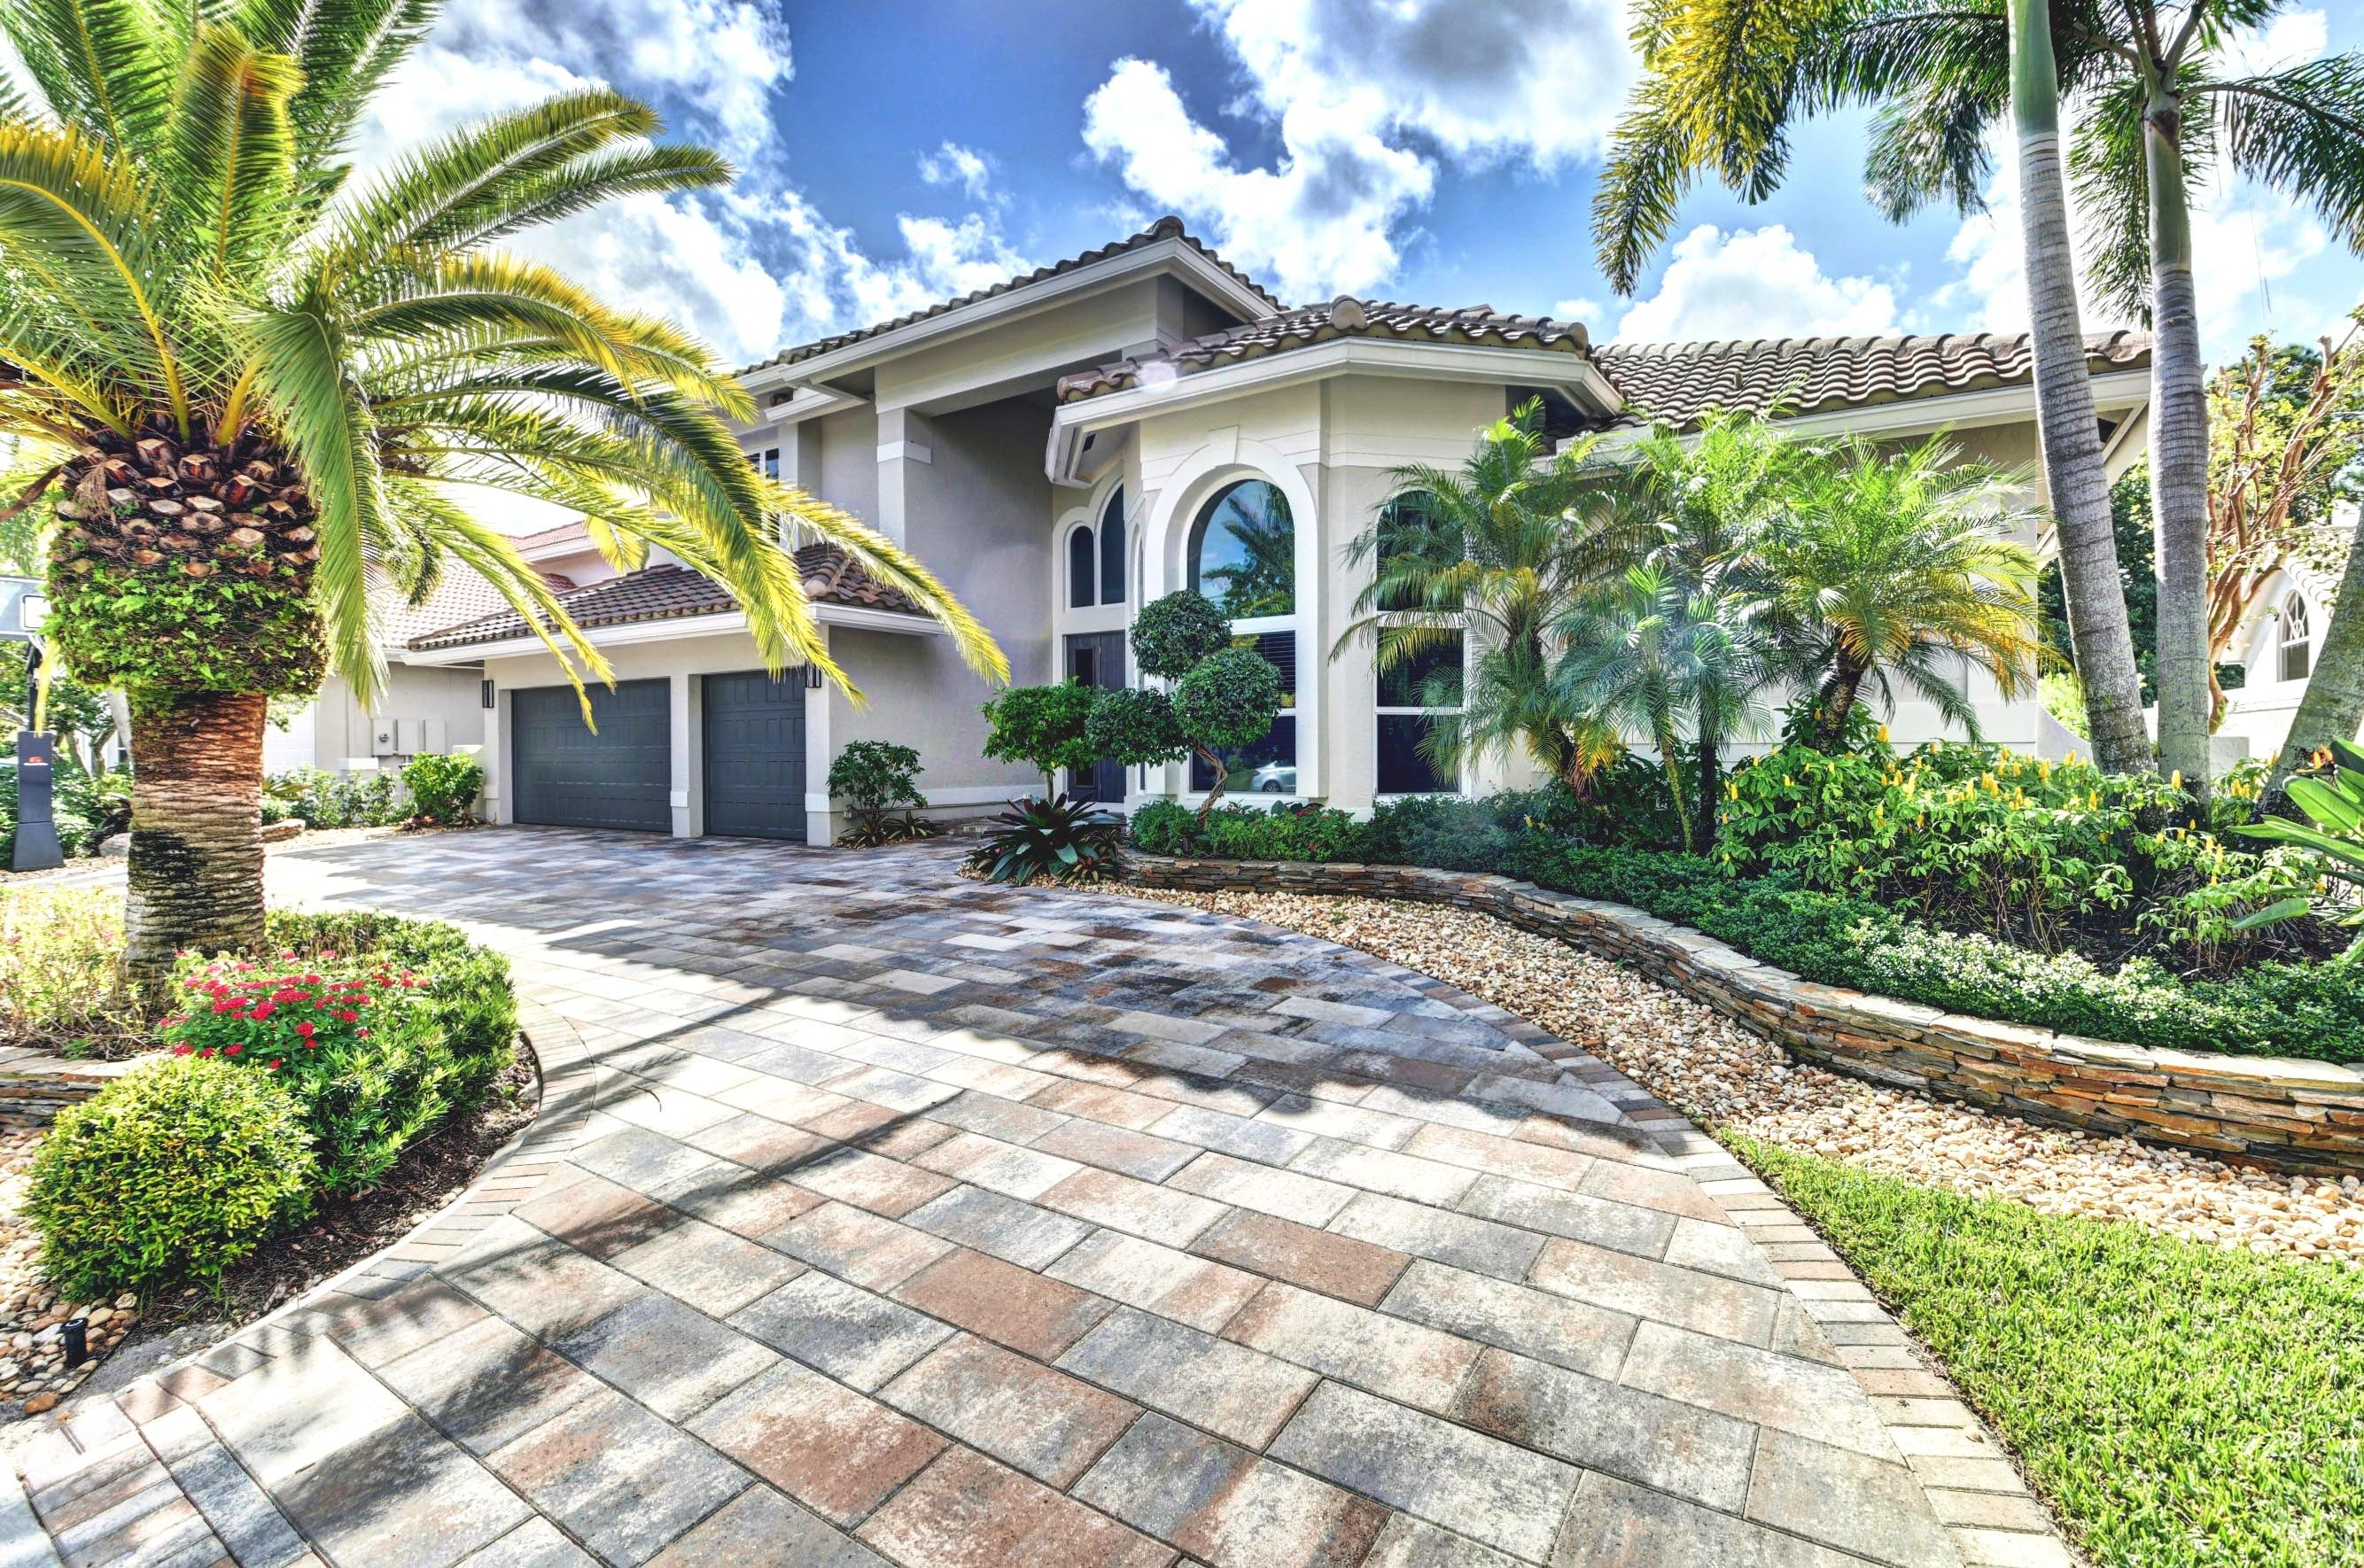 Photo of 3014 NW 60th Street, Boca Raton, FL 33496